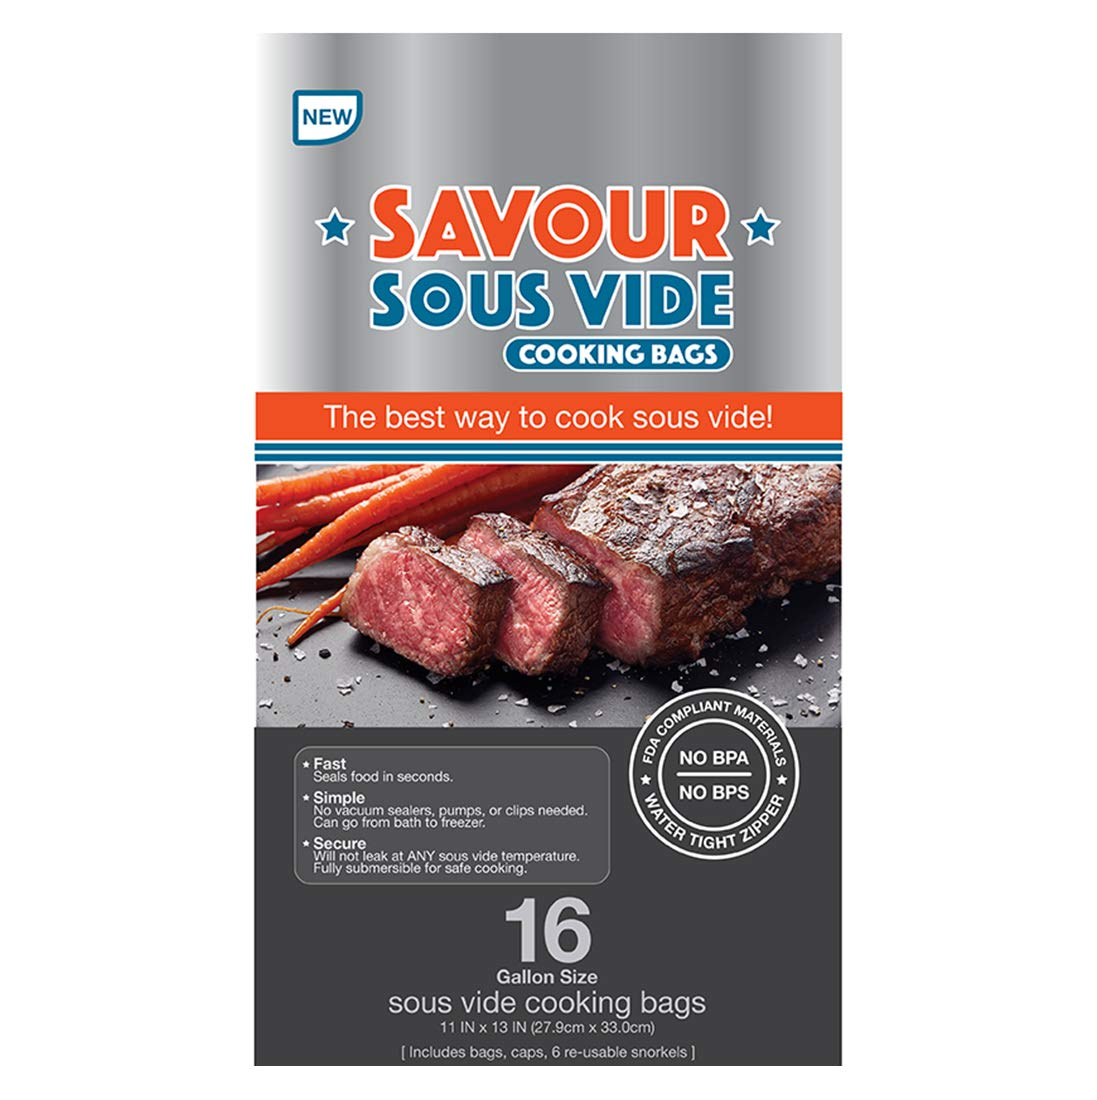 Savour Sous Vide Gallon Bag - 16 BPA Free Sous Vide Bags, Bags for All Sous Vide Cooking including Anova and Joule Cookers, Simple and Fast to Use, Water-tight Zipper, Seals in Seconds, Reusable